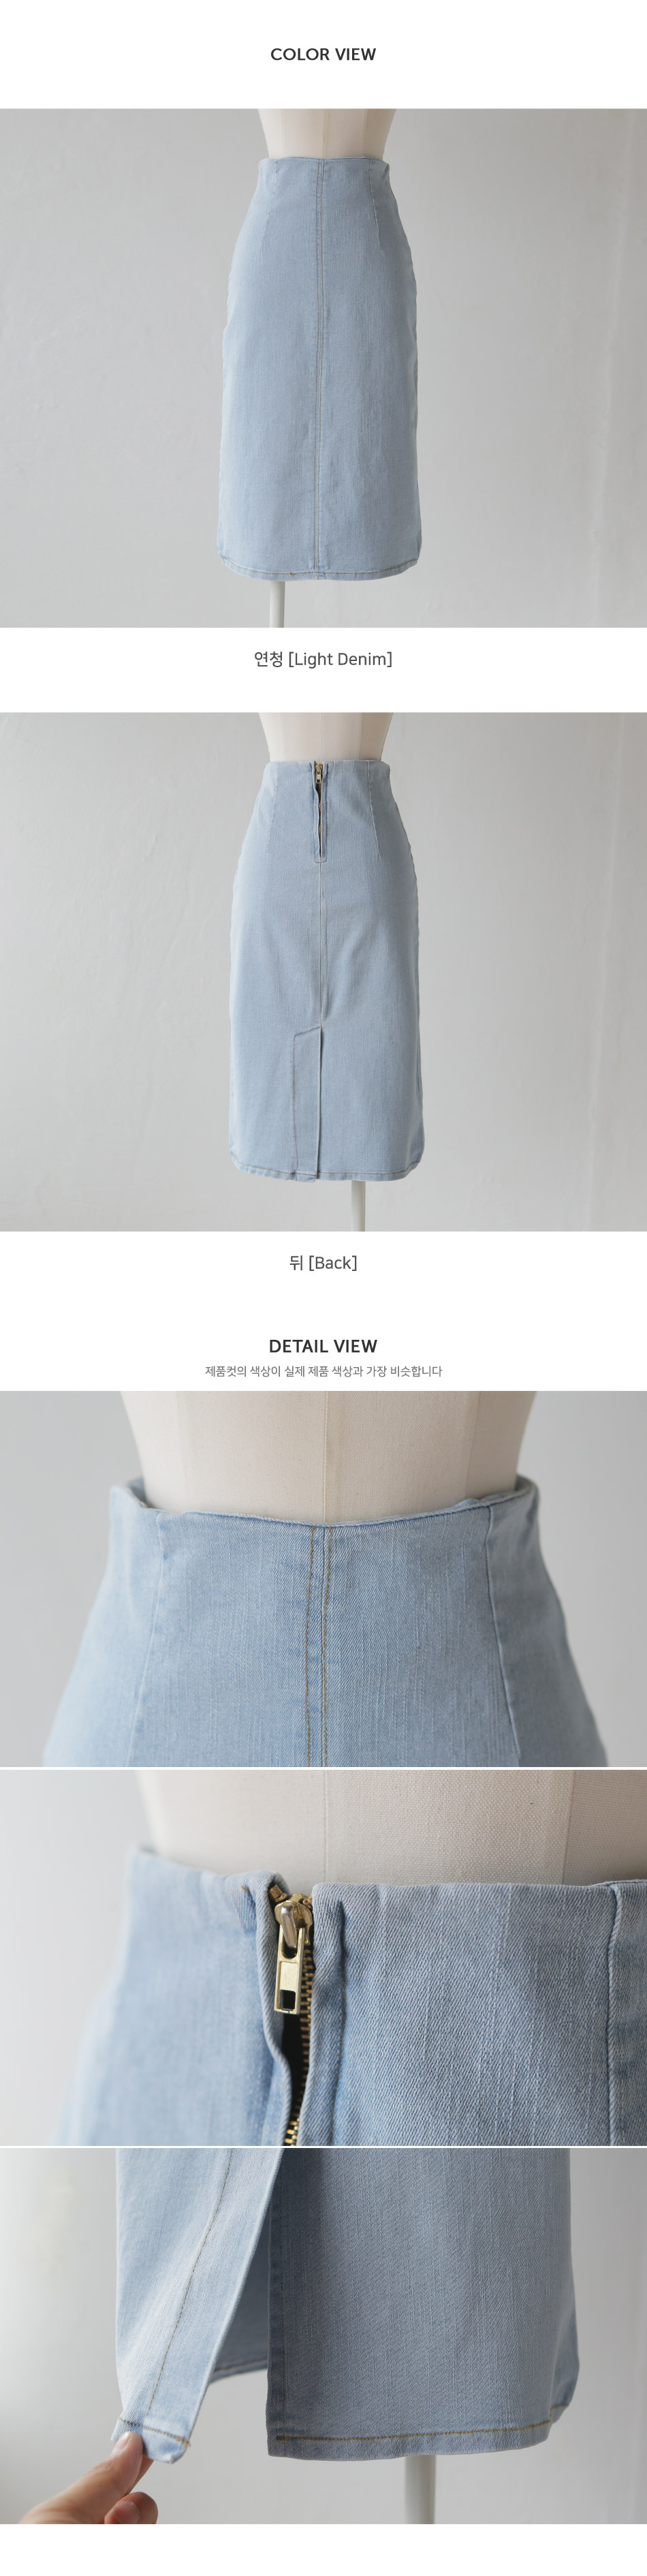 Stitch tension denim long skirt